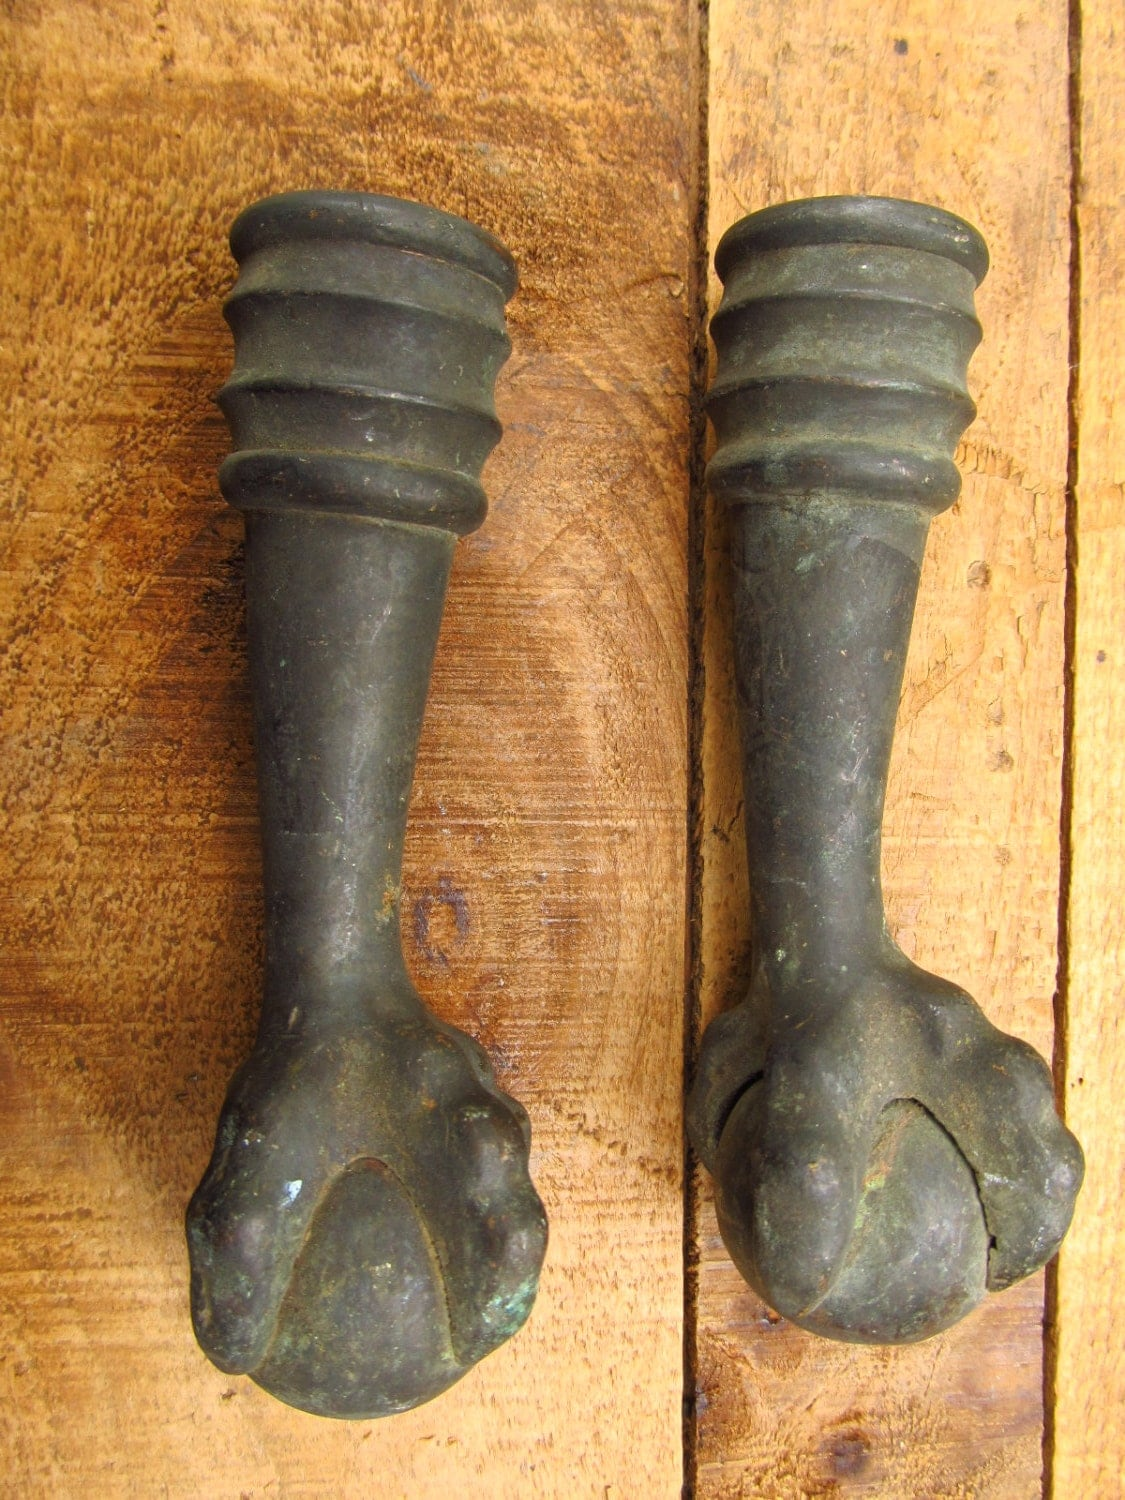 Antique Claw Foot Blogs Pictures And More On Wordpress